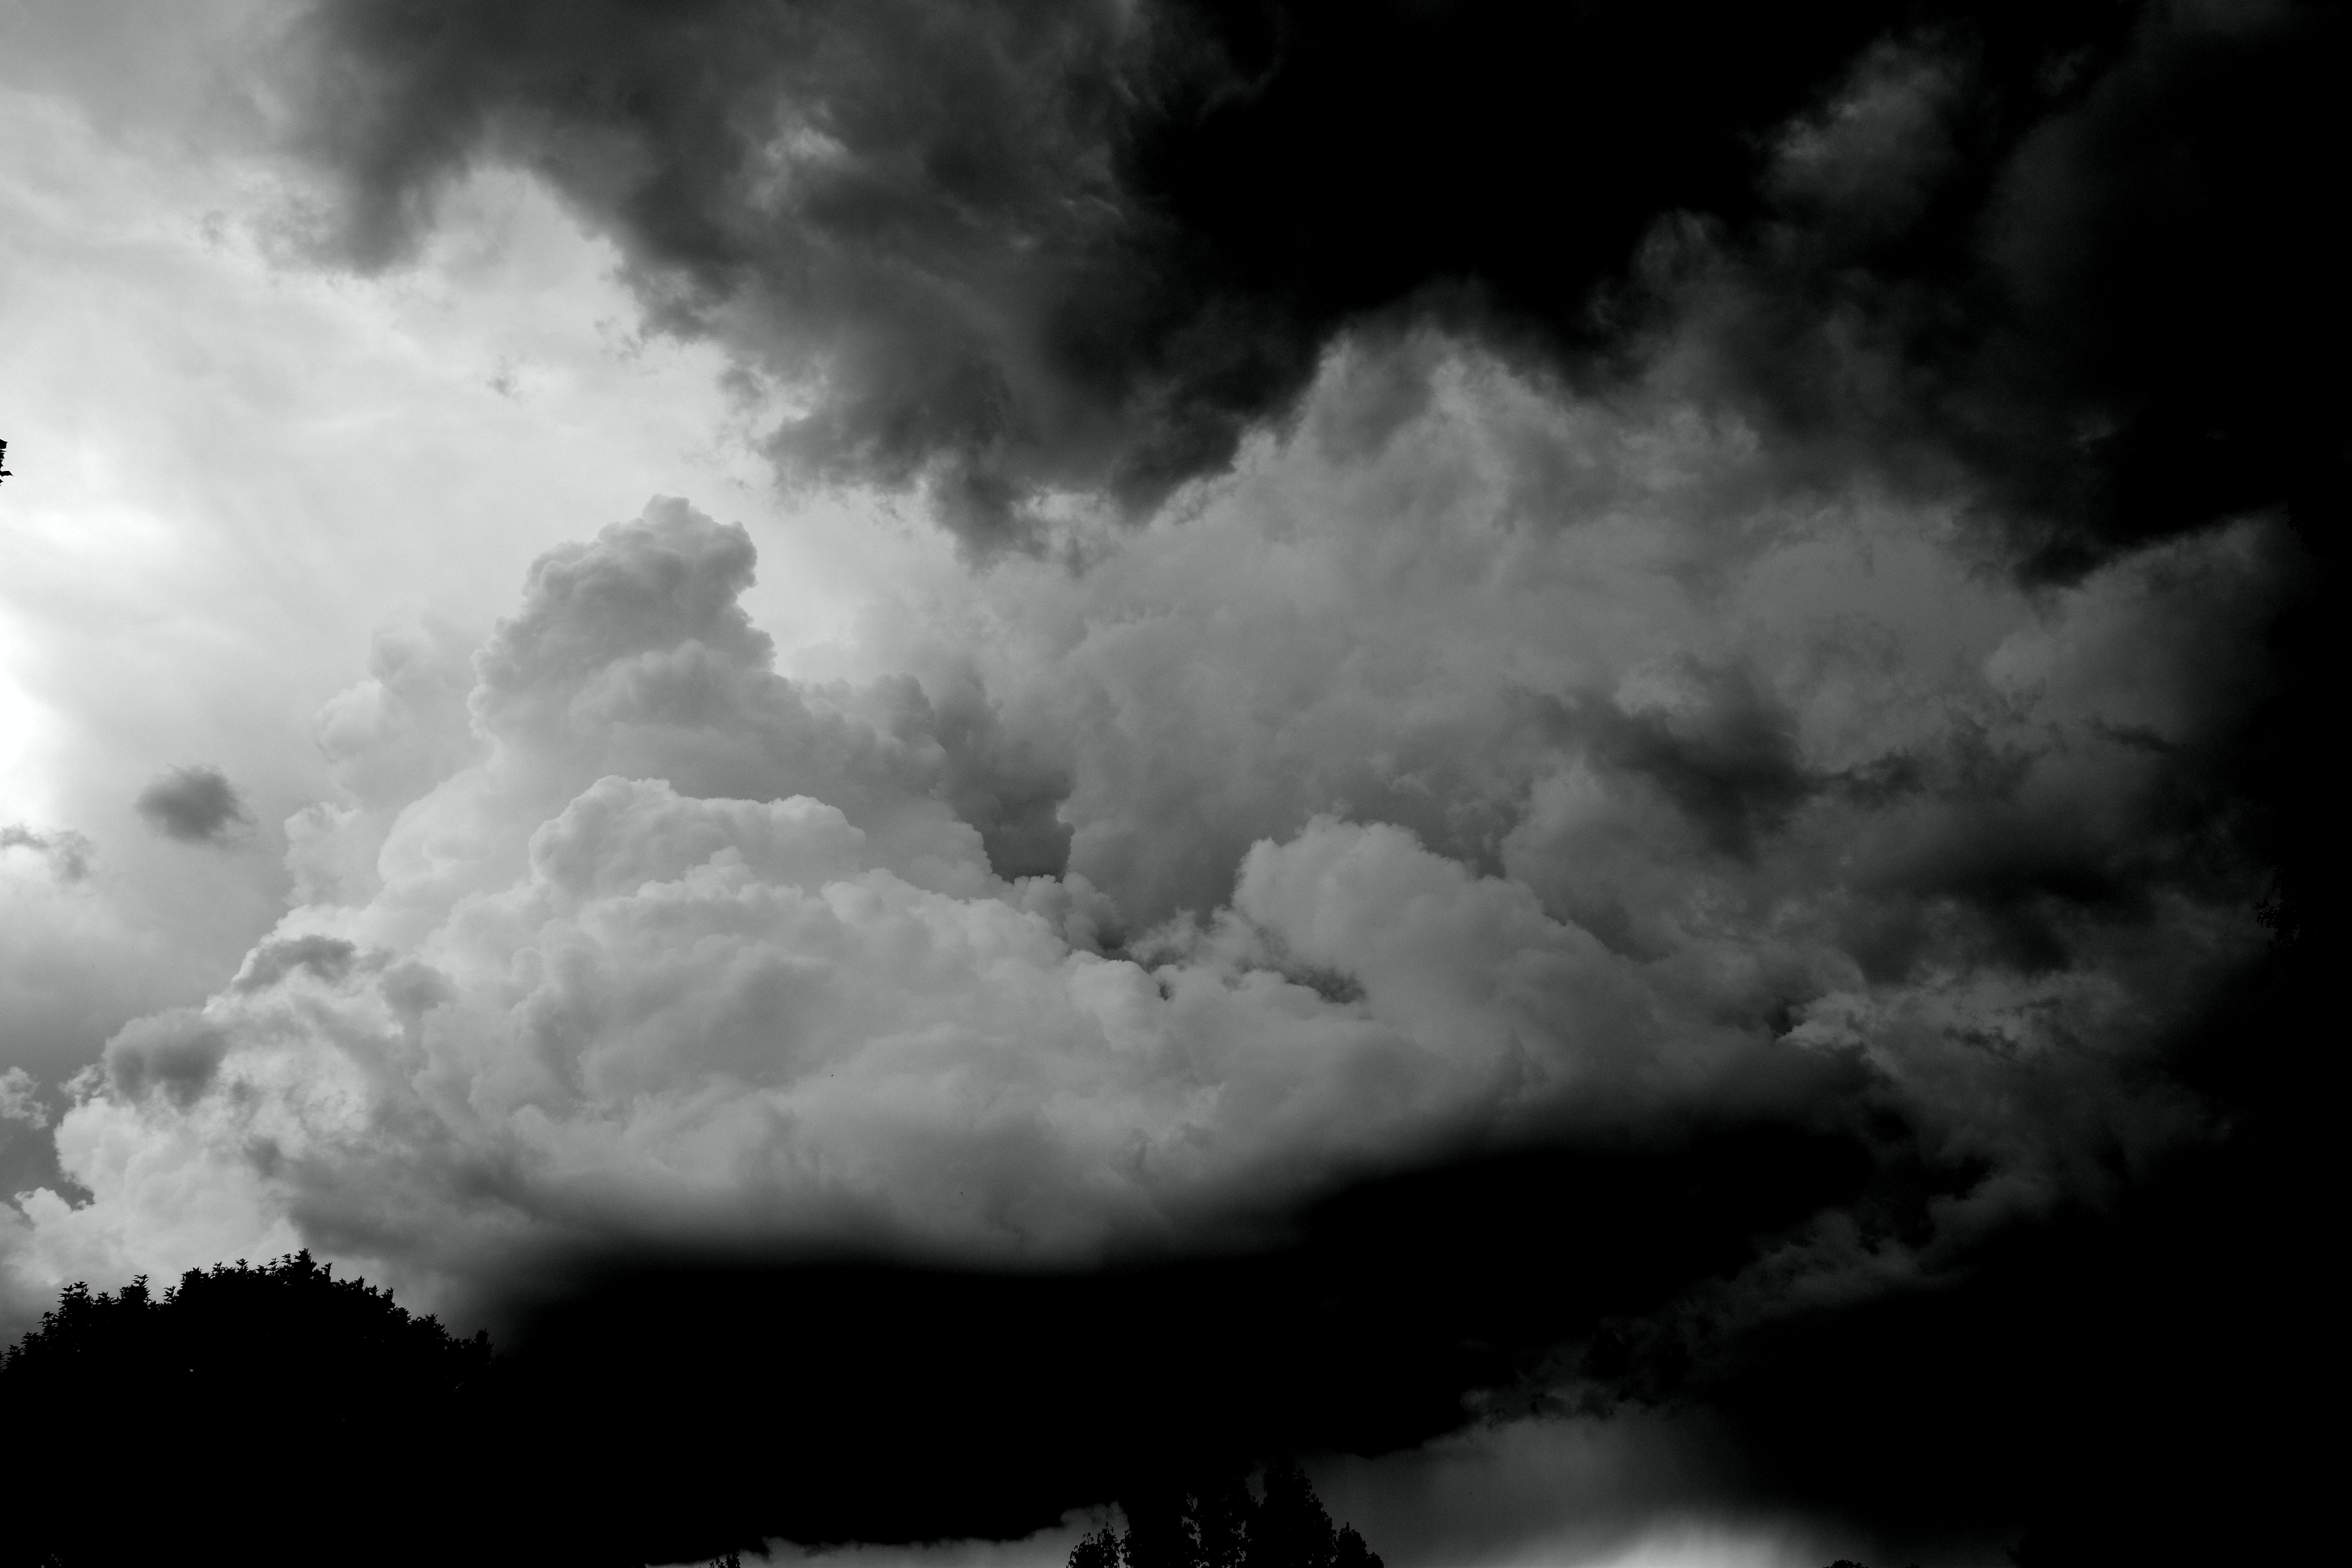 A black and white photograph of storm clouds